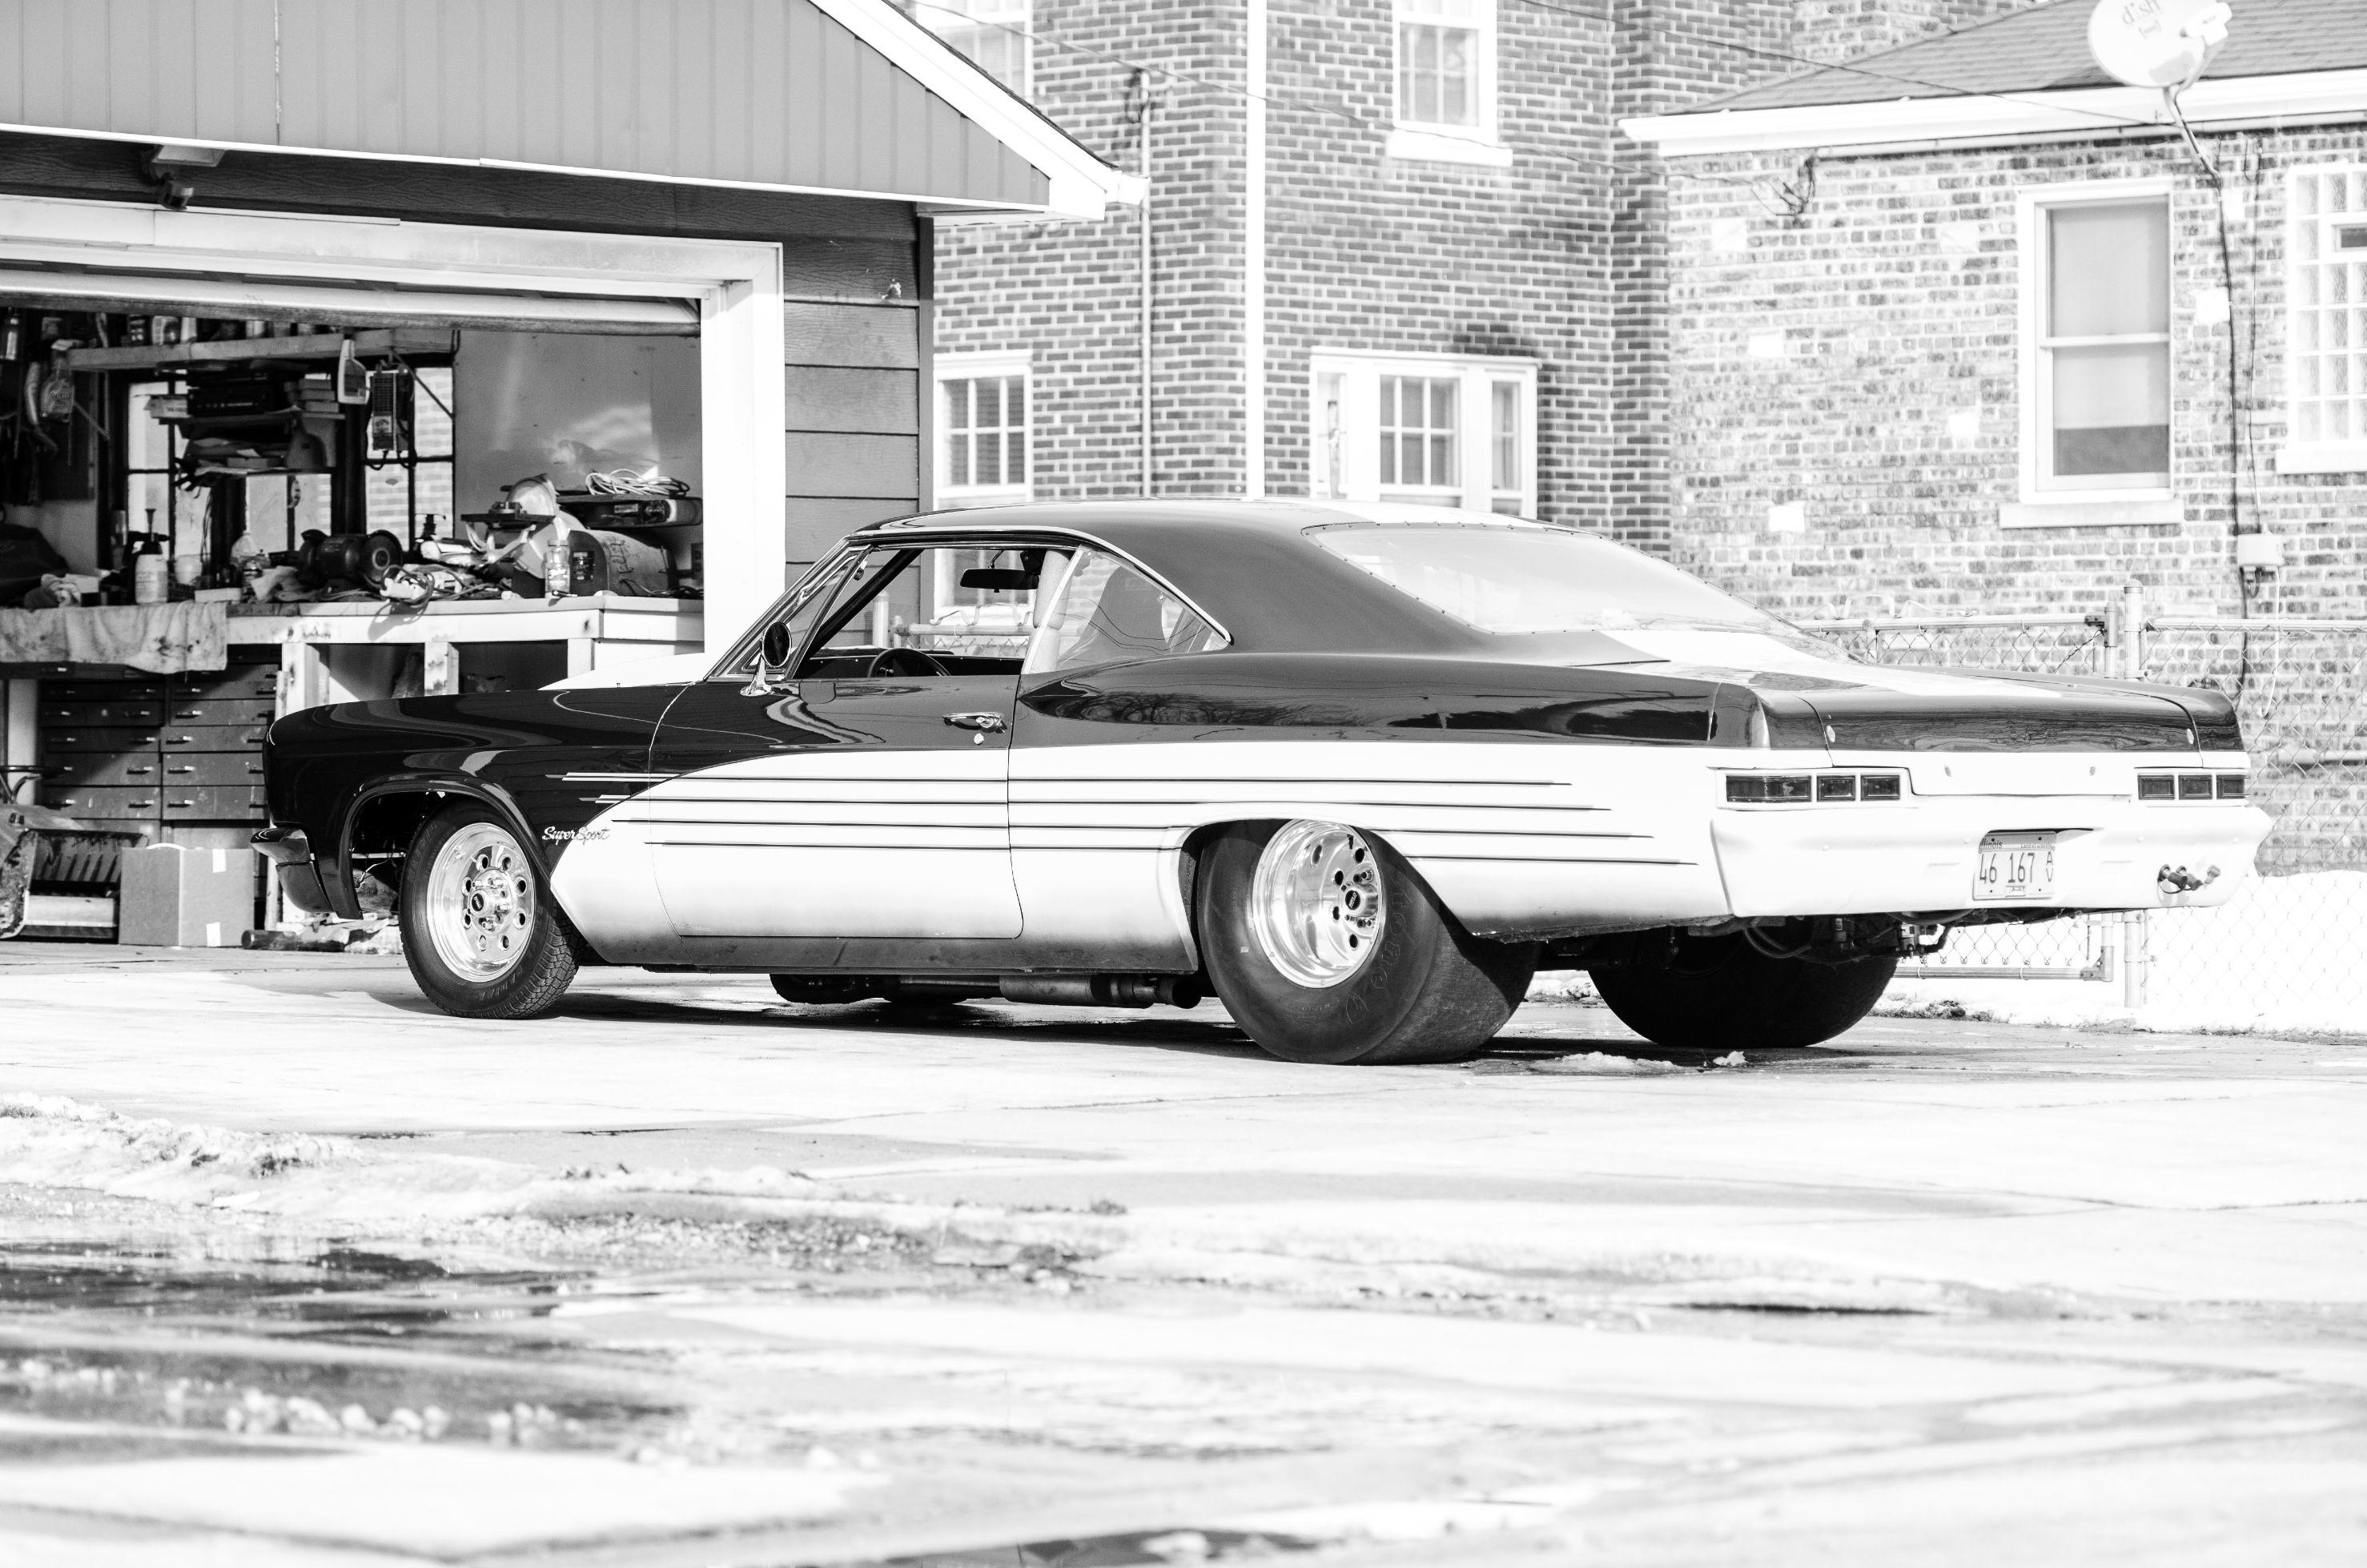 Throwback or filter? Hot Rod 1966 Chevy Impala